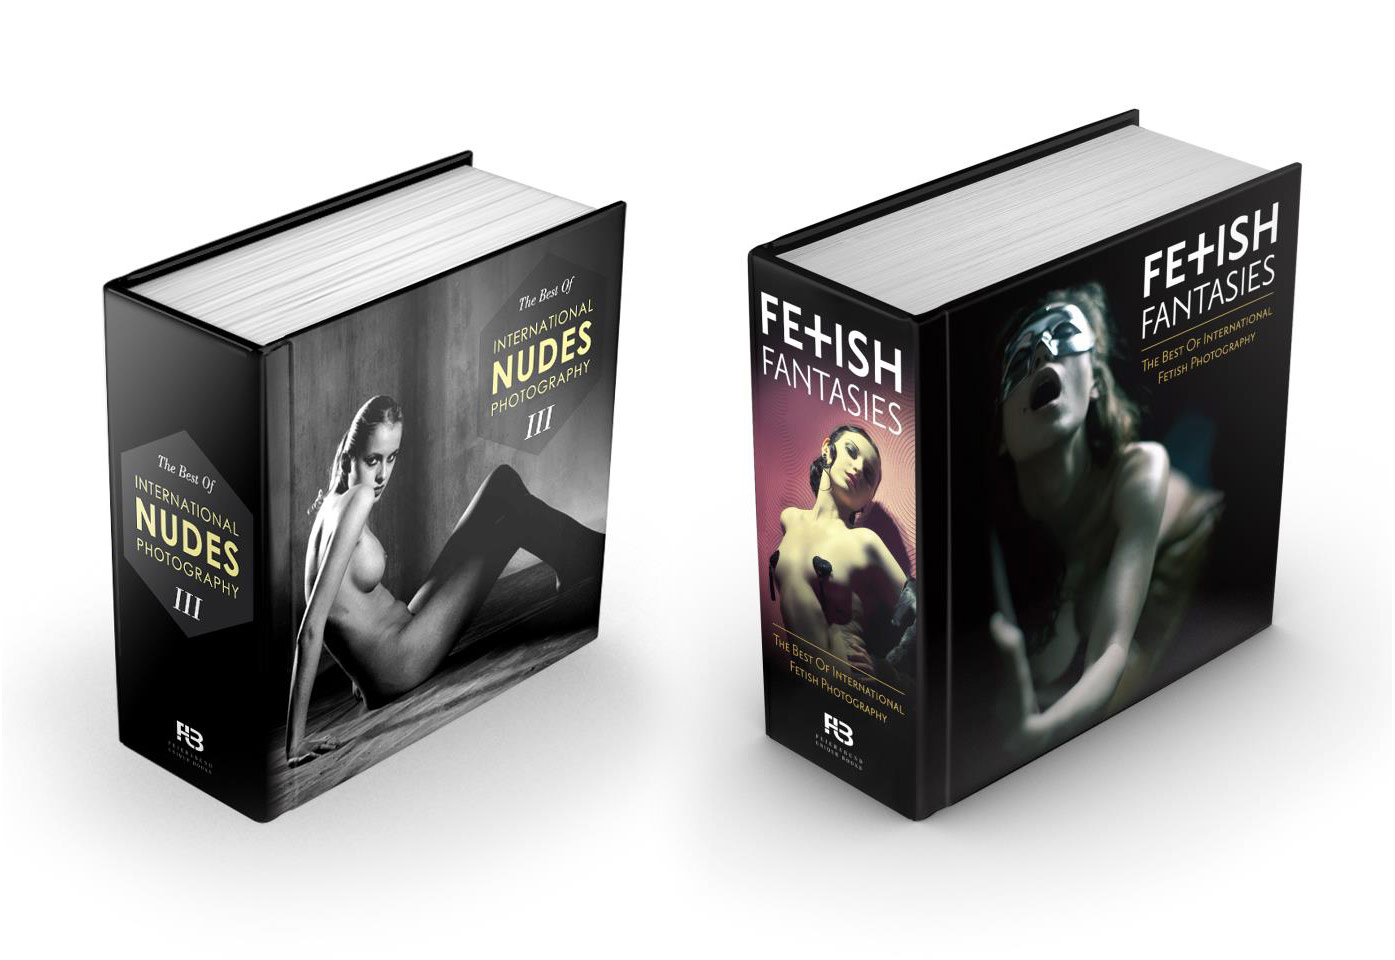 Nudes 3 & Fetish Fantasies books